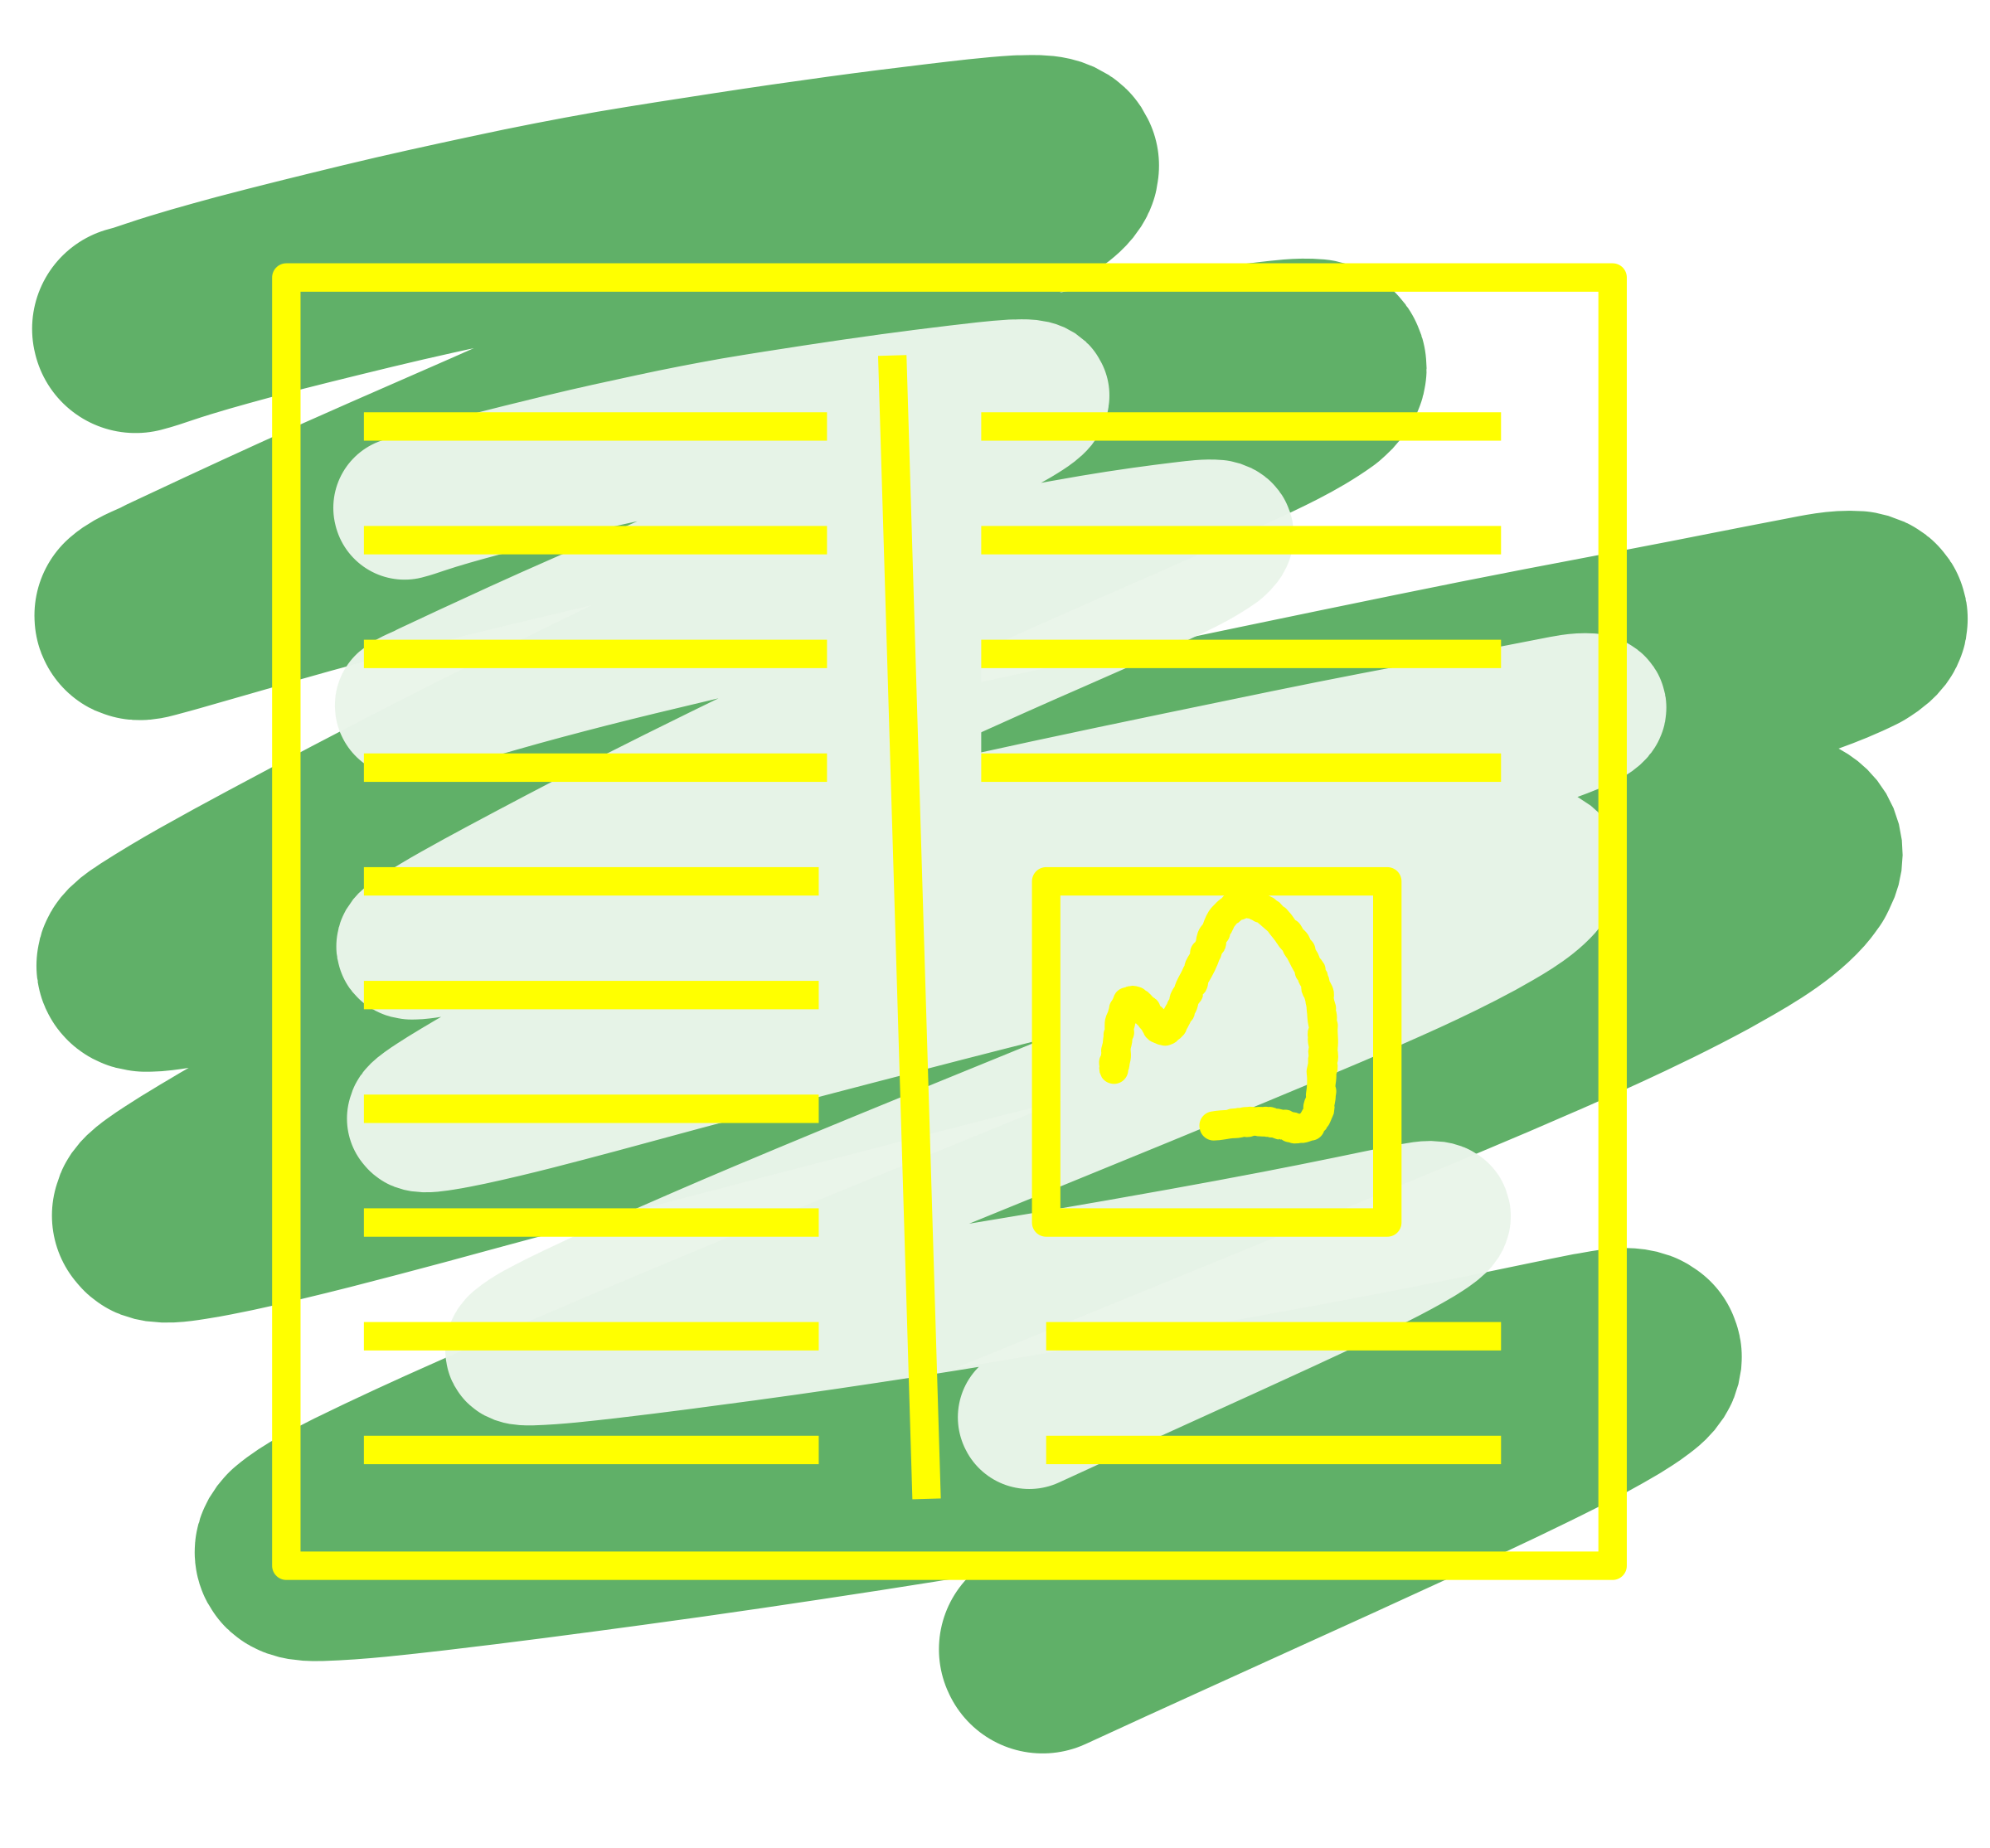 Textbook clipart green. Open book big image